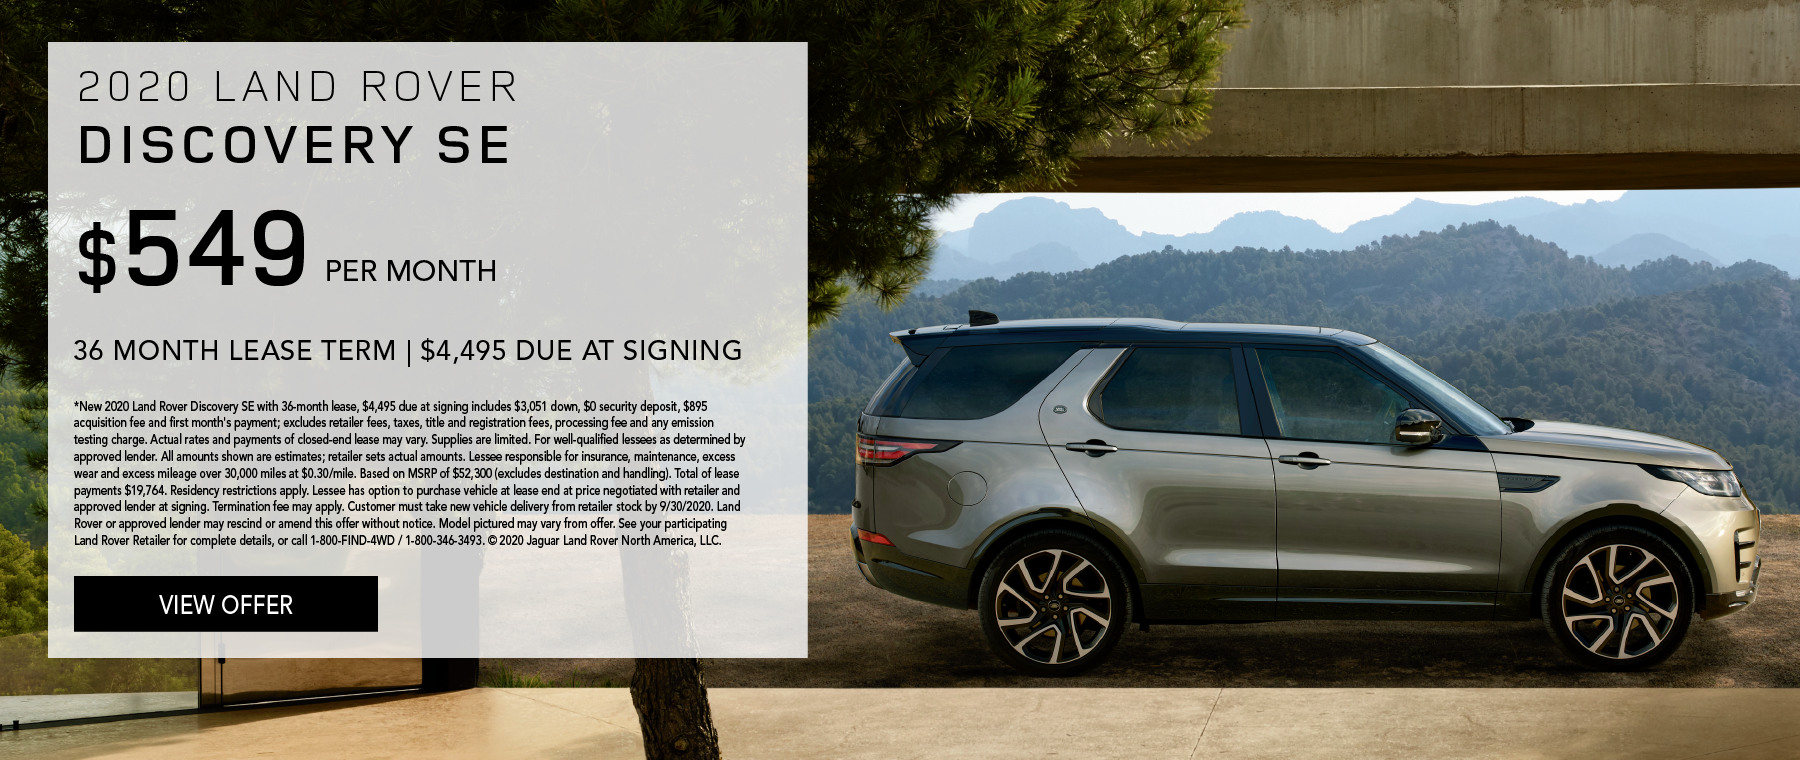 2020 LAND ROVER DISCOVERY SE. $549 PER MONTH. 36 MONTH LEASE TERM. $4,495 CASH DUE AT SIGNING. $0 SECURITY DEPOSIT. 10,000 MILES PER YEAR. EXCLUDES RETAILER FEES, TAXES, TITLE AND REGISTRATION FEES, PROCESSING FEE AND ANY EMISSION TESTING CHARGE. ENDS 9/30/2020.